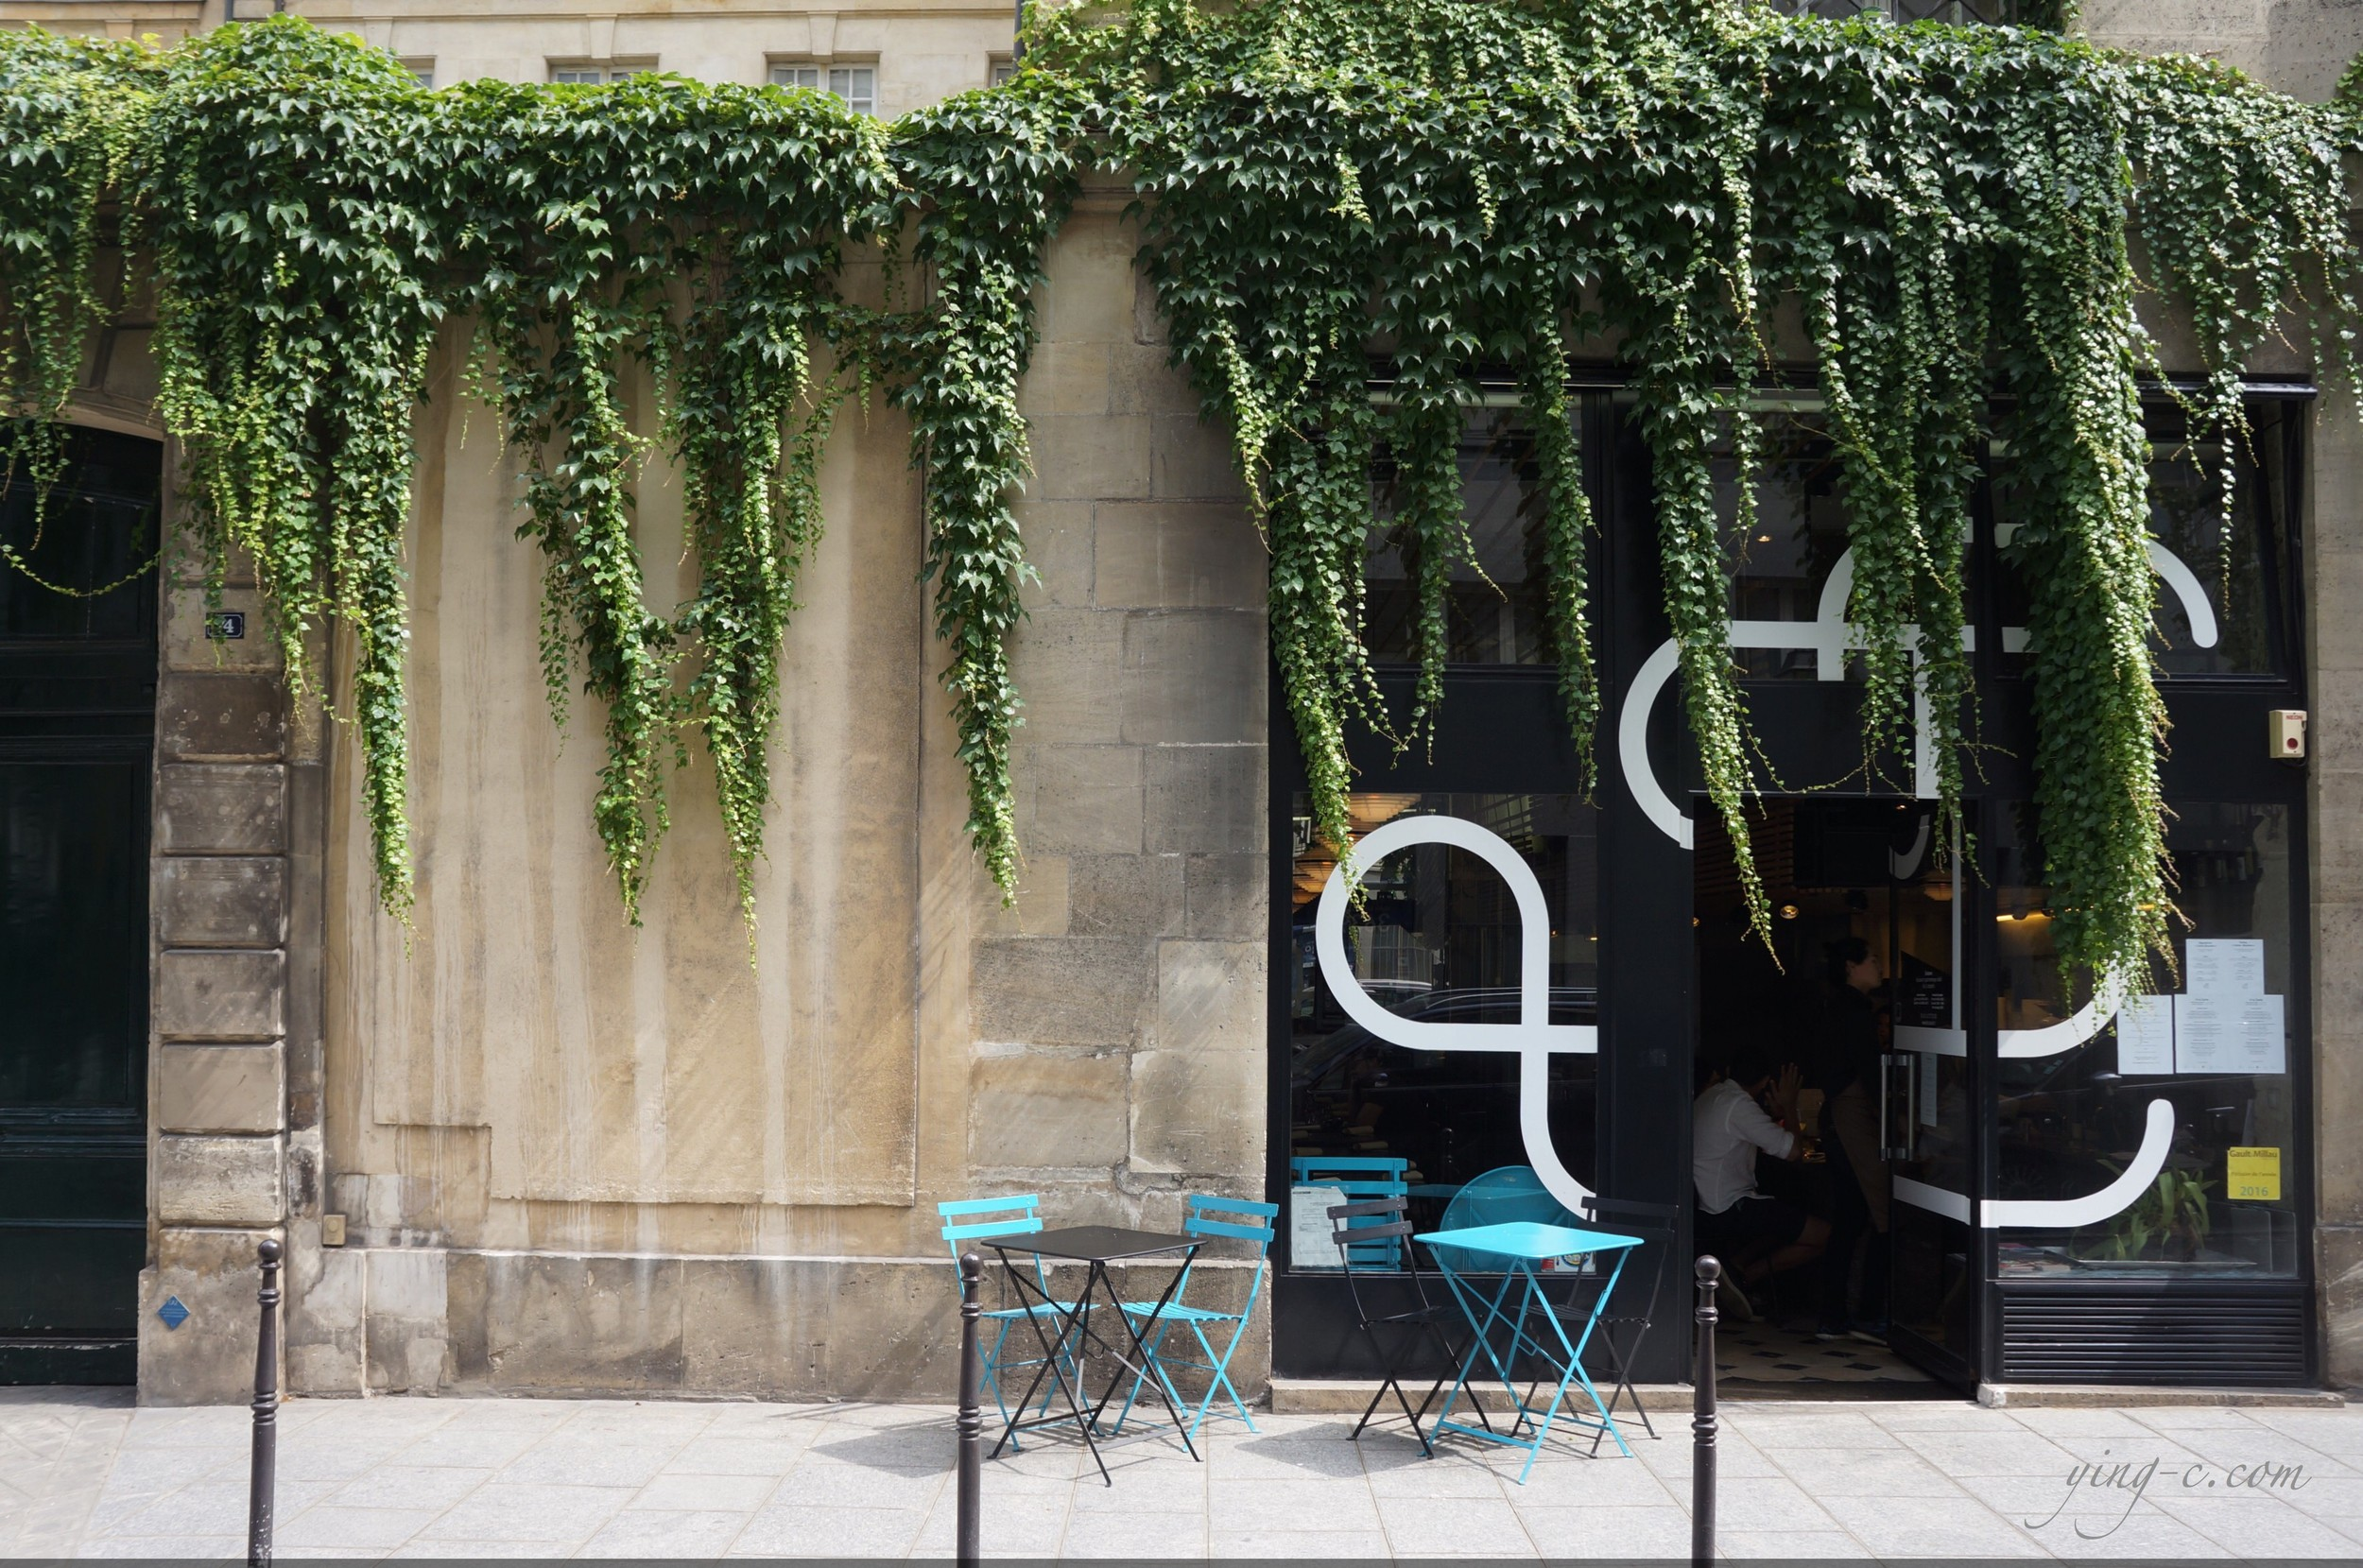 Situated in the Marais, Dessance has a very chic façade.